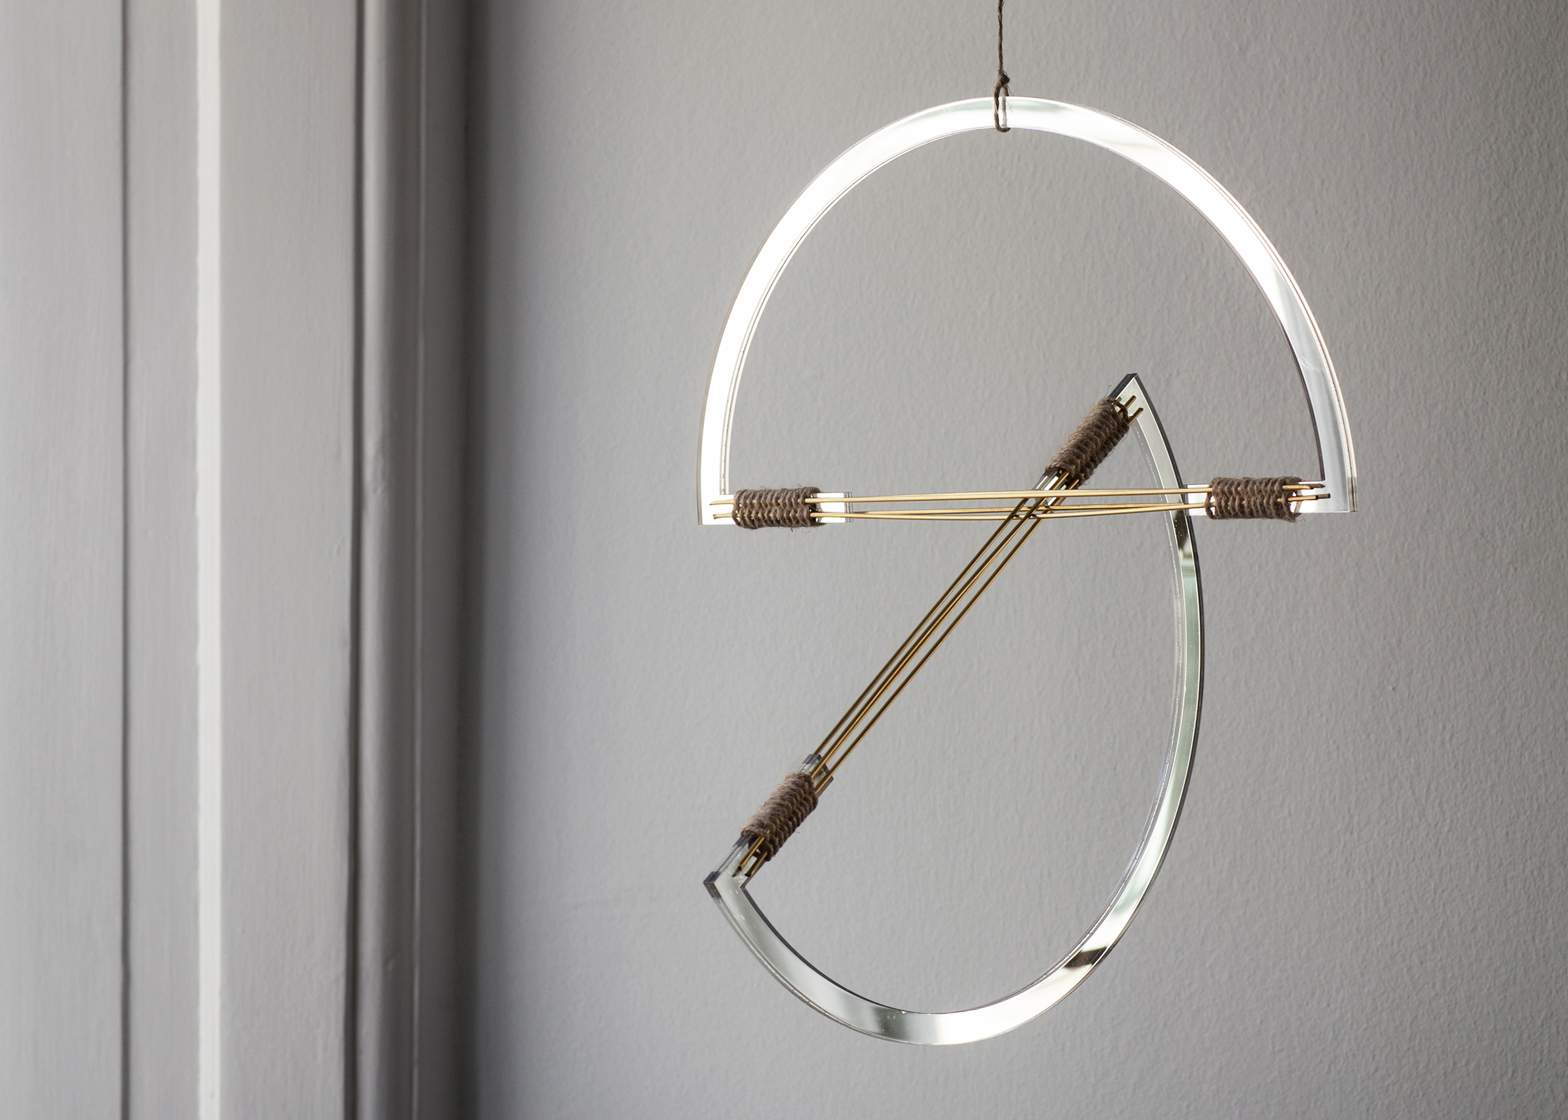 Mirror mobiles by Elkeland